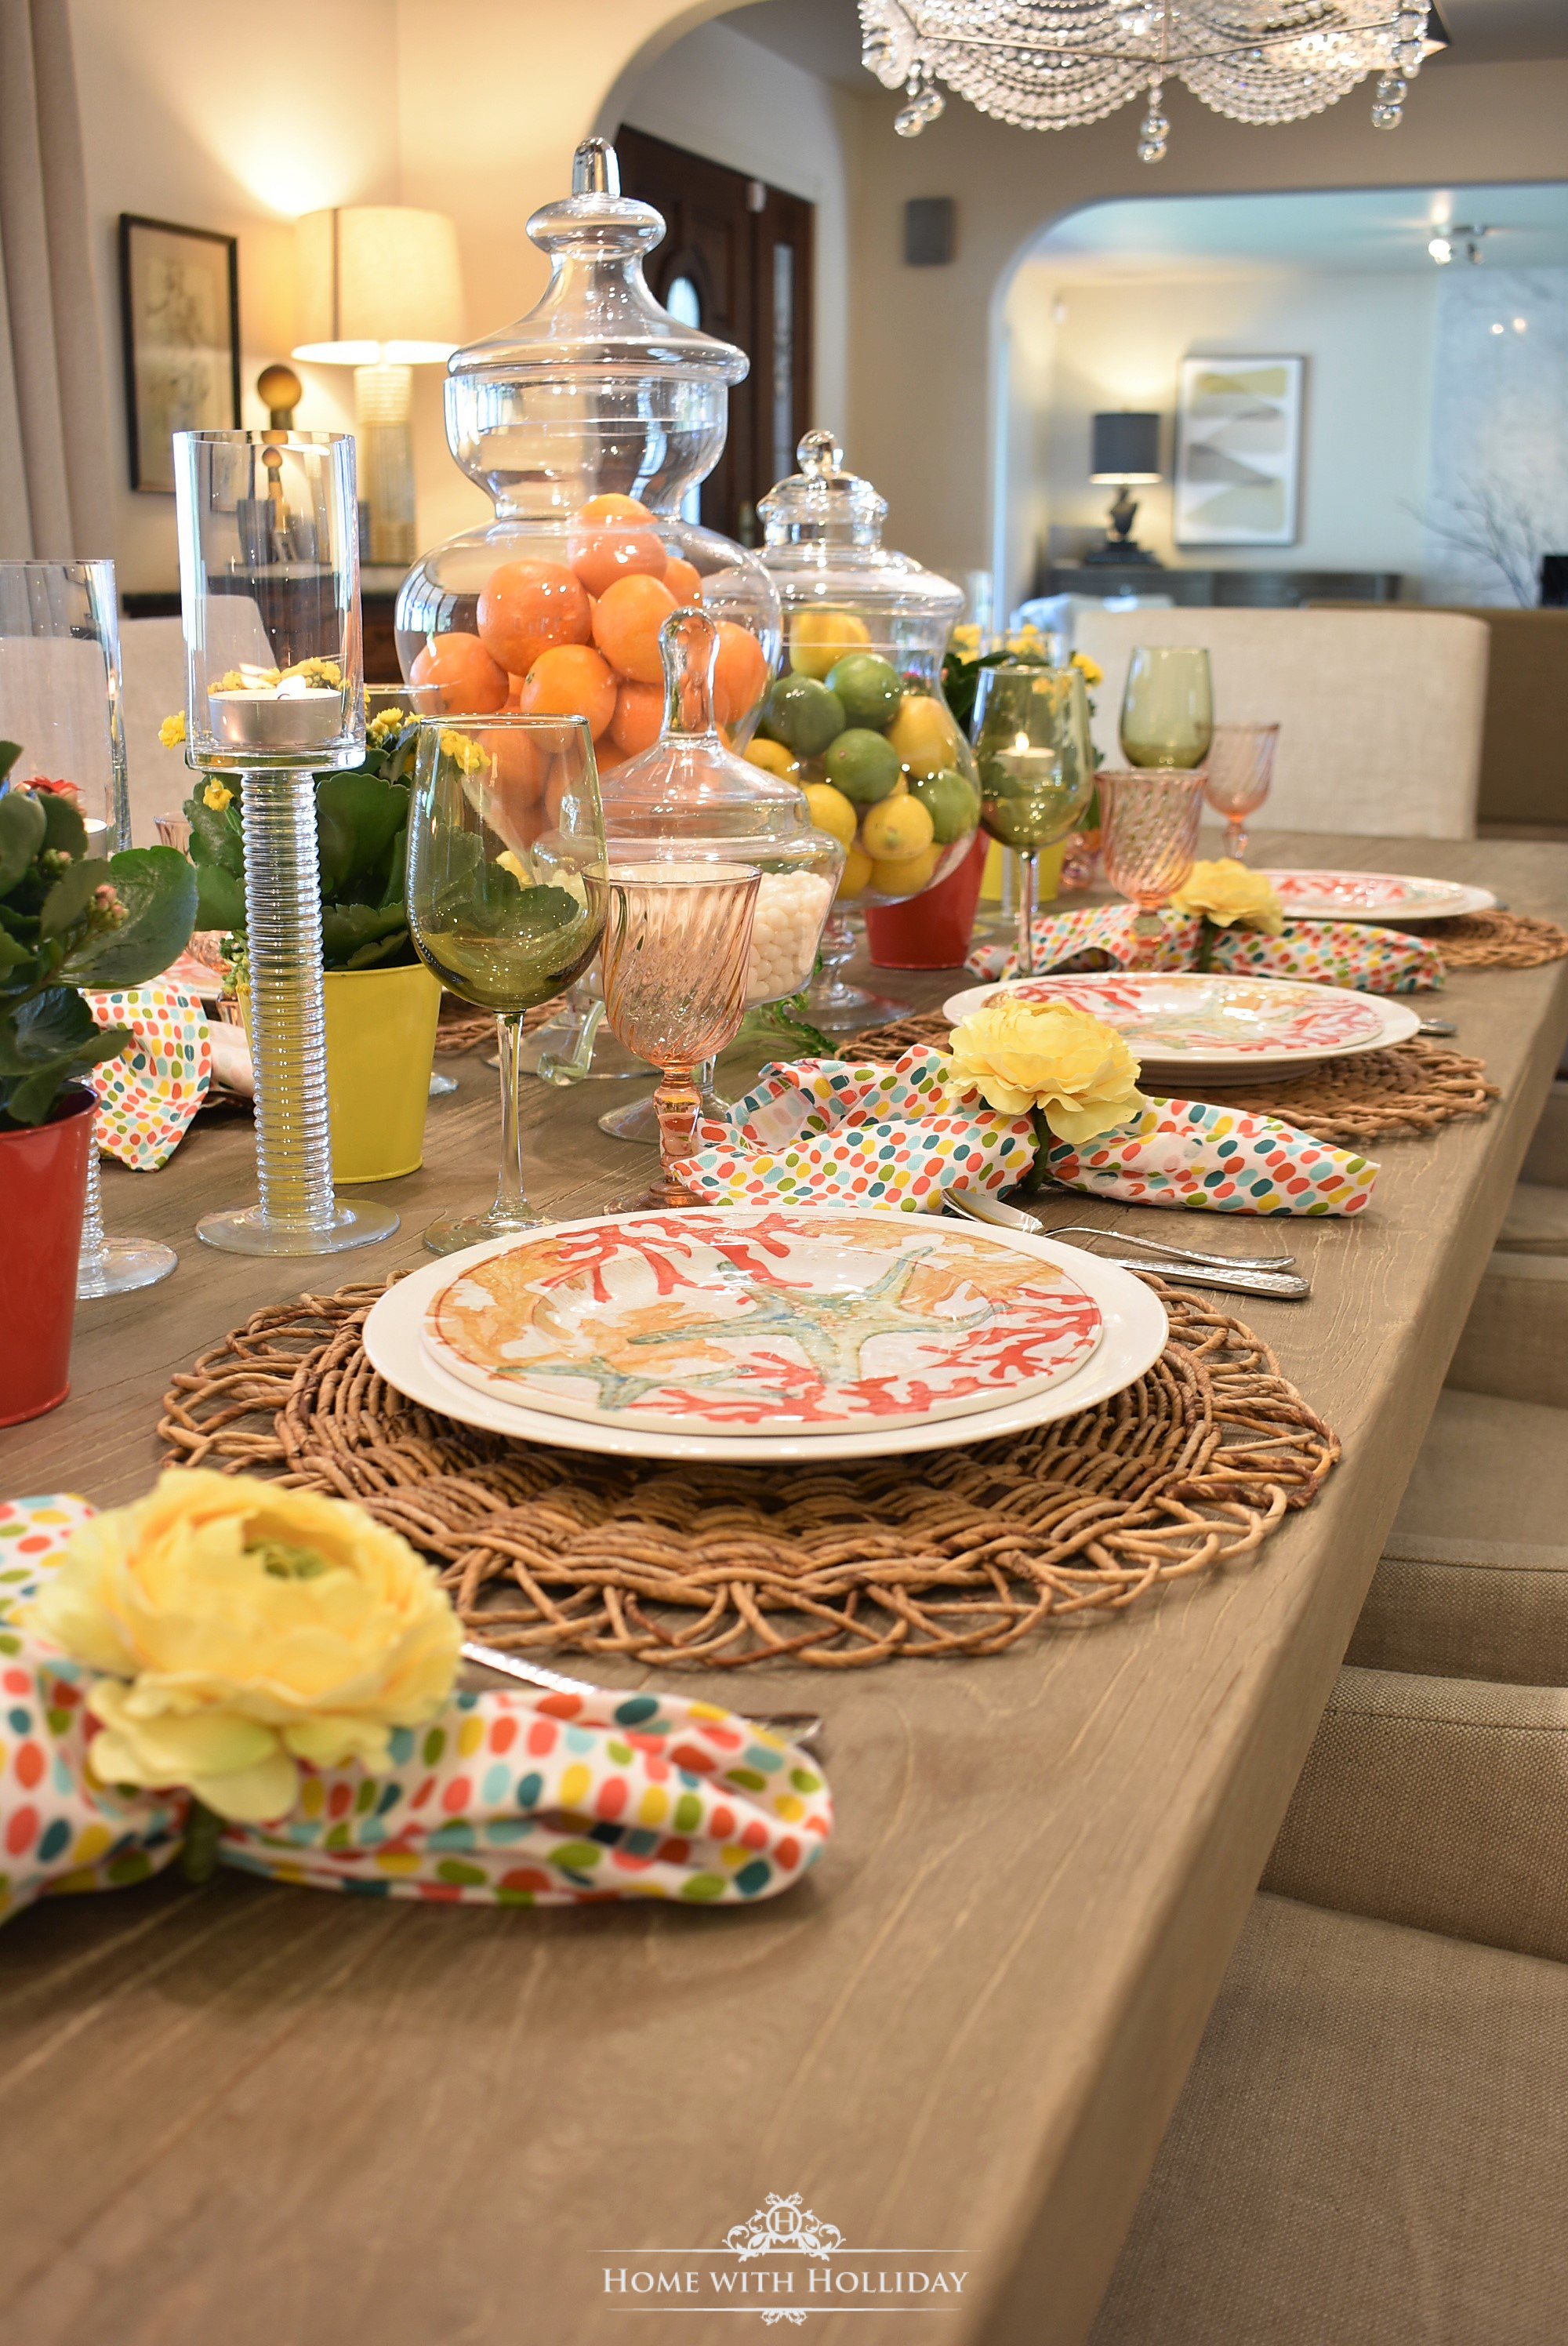 This past weekend we celebrated our daughteru0027s 16th birthday. It has been my dream for all of her life to throw her a huge u201cSweet 16u201d party when the time ... & Creating a Simple Tropical Summer Table Setting - Home with Holliday